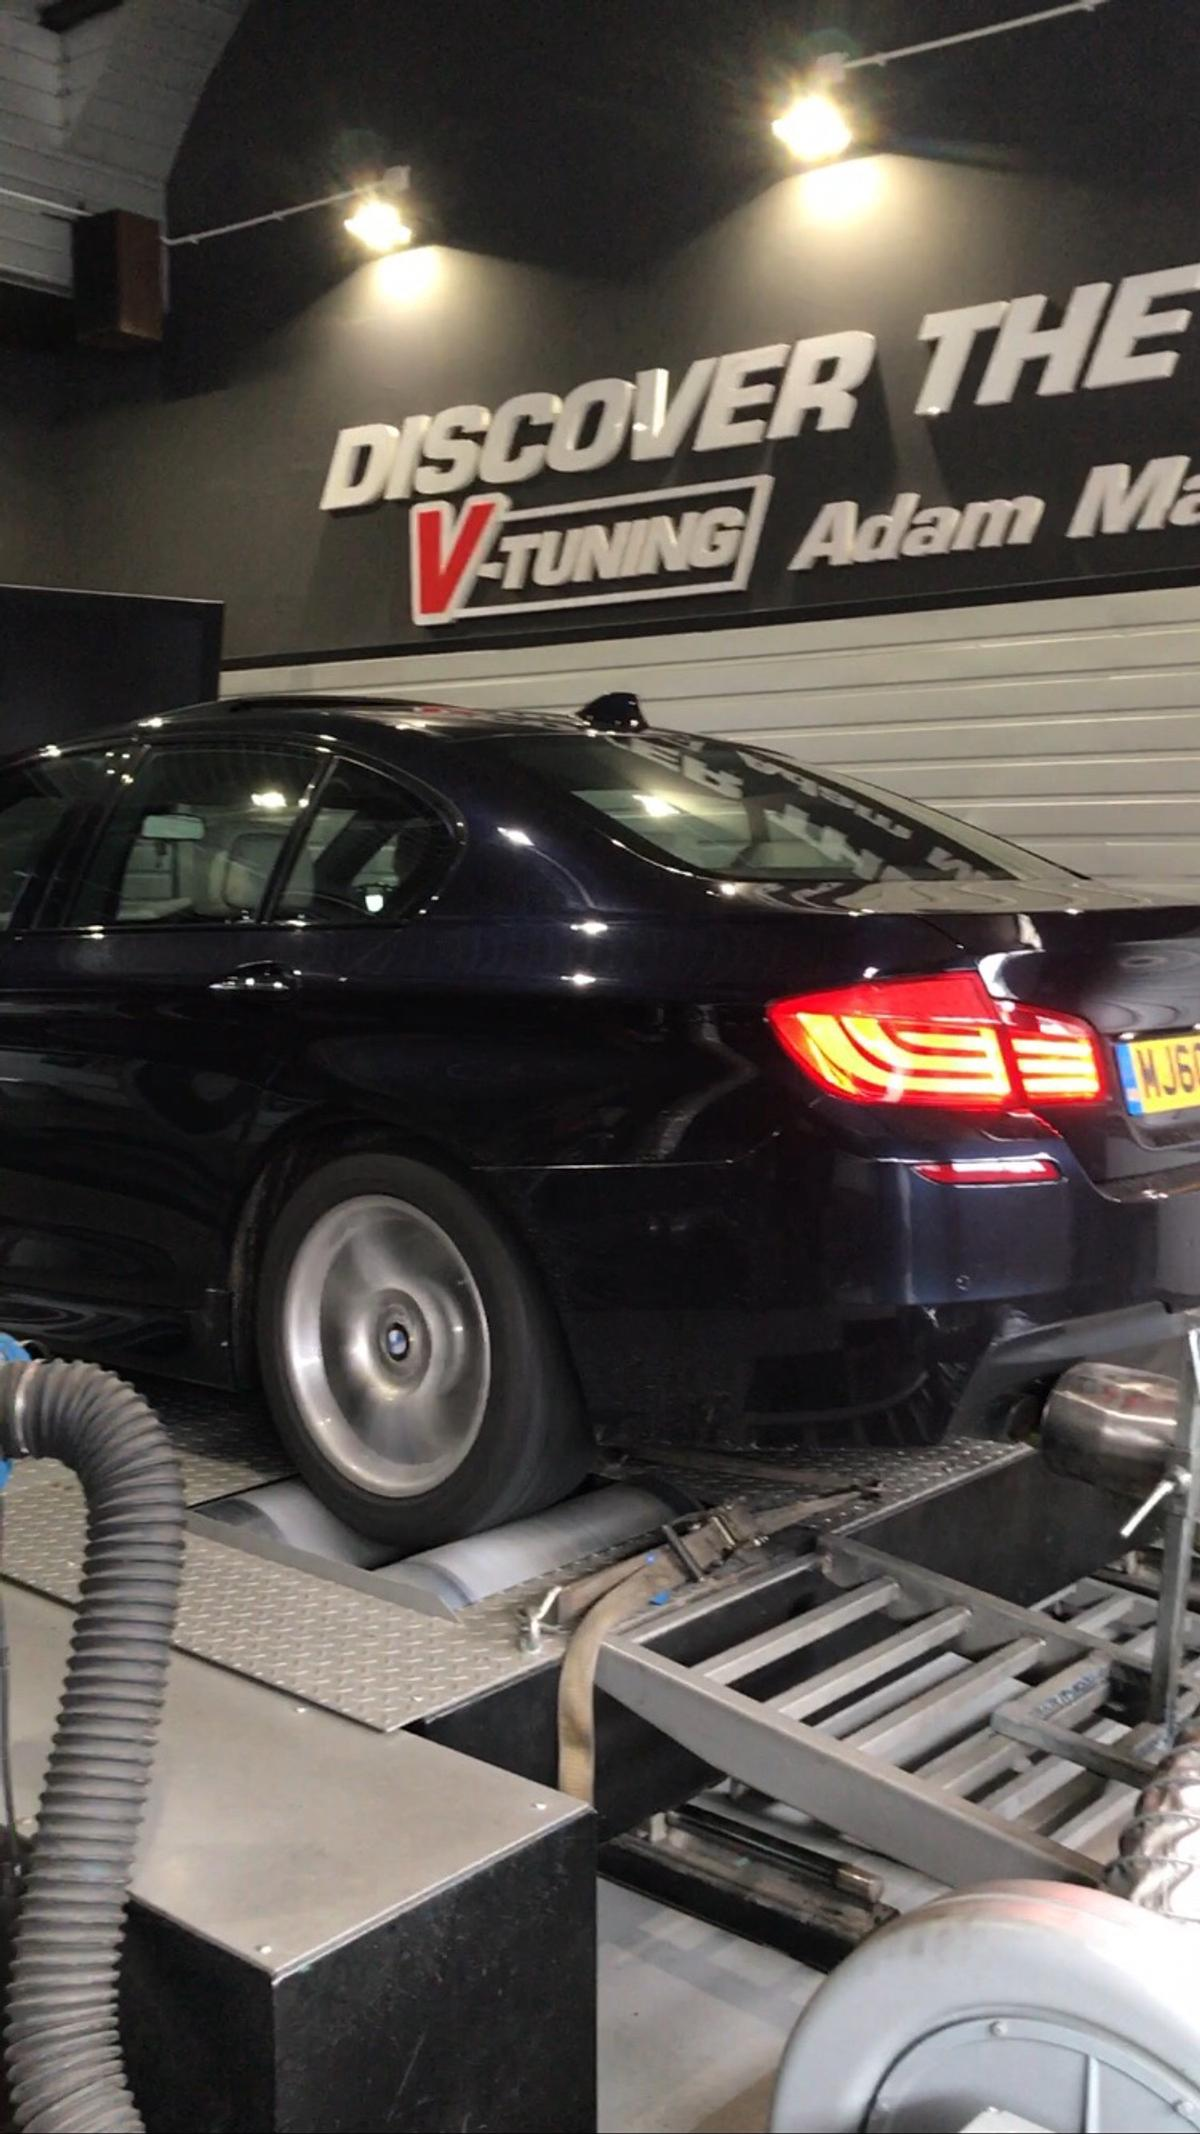 Bmw f10 530d remap 280 bhp in E12 London for £10,800 00 for sale